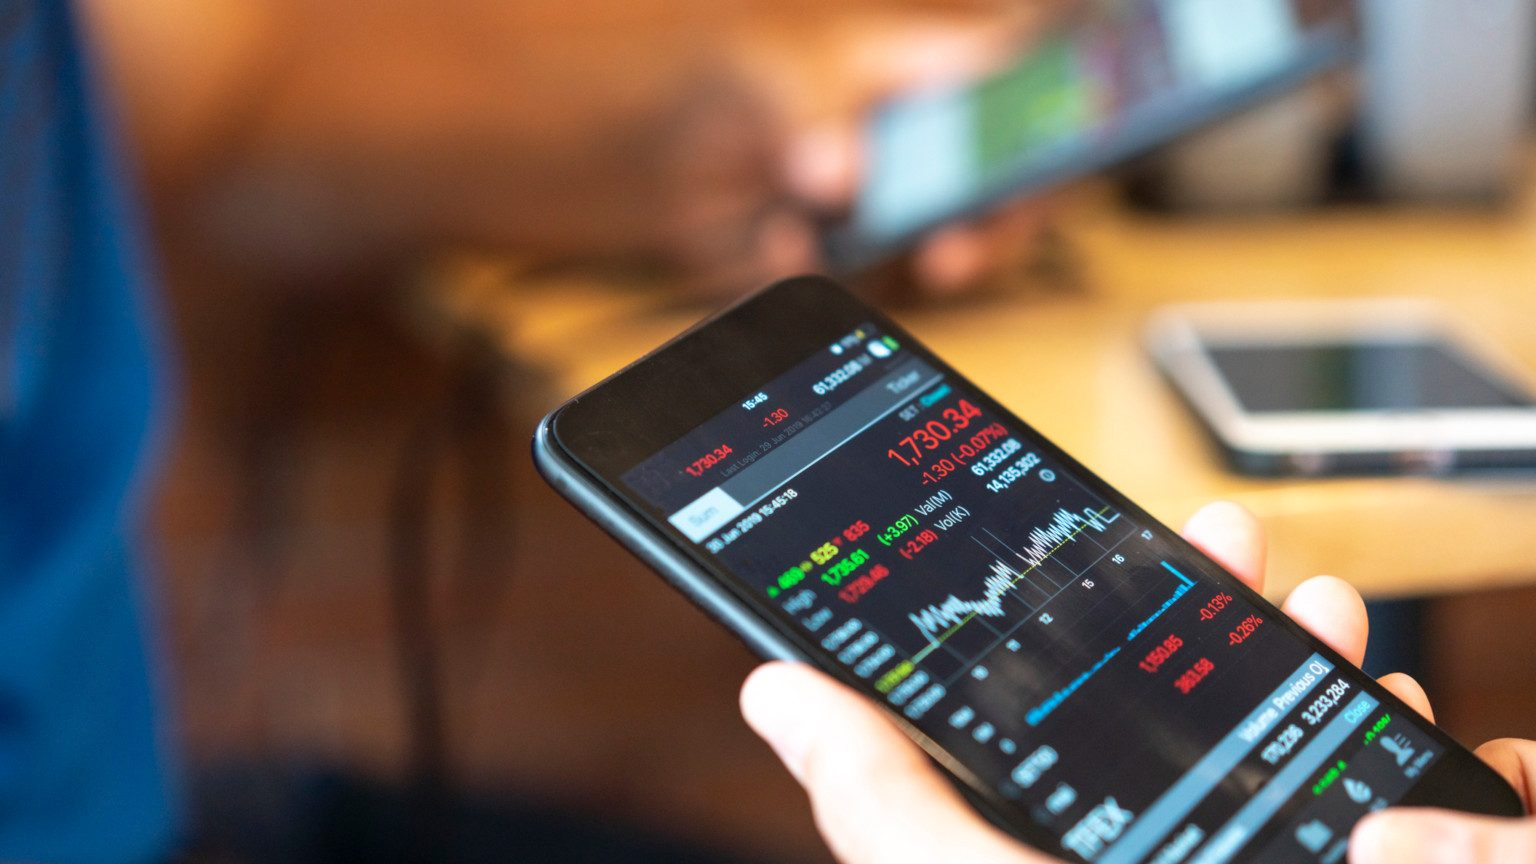 Hand holding a smart phone with stock trading on screen